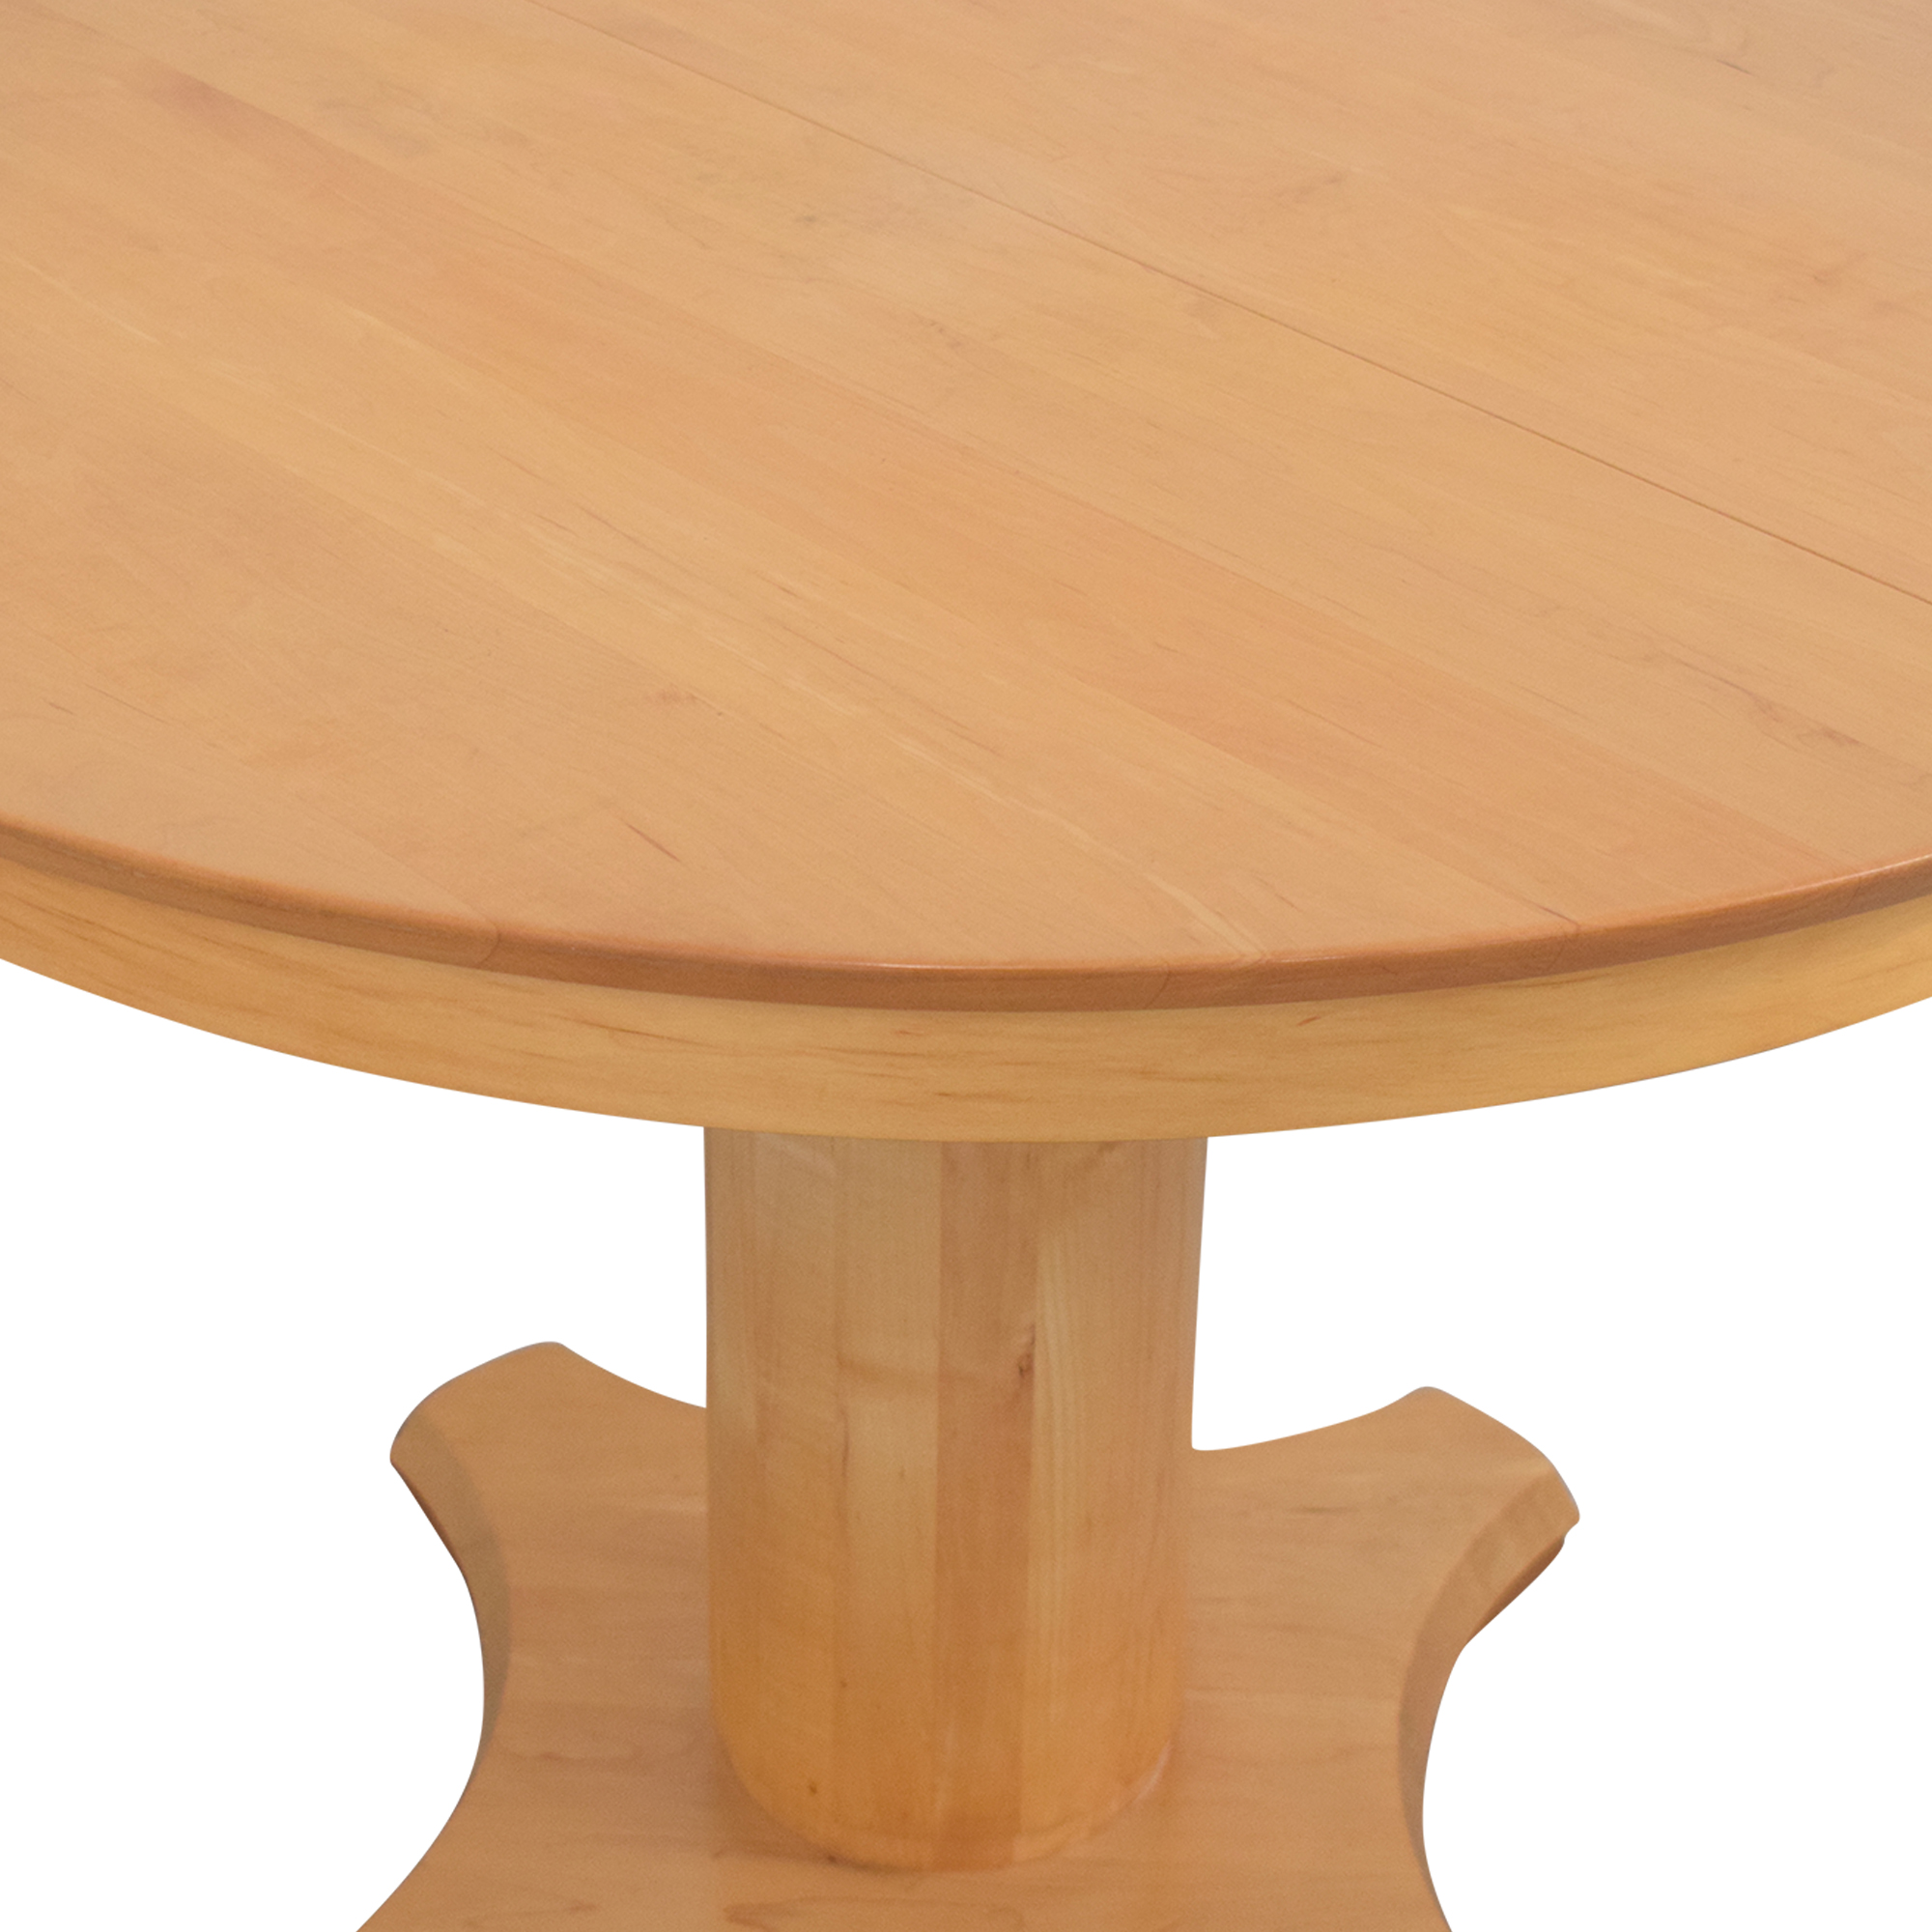 Crate & Barrel Crate & Barrel Dining Round Dinner Table dimensions